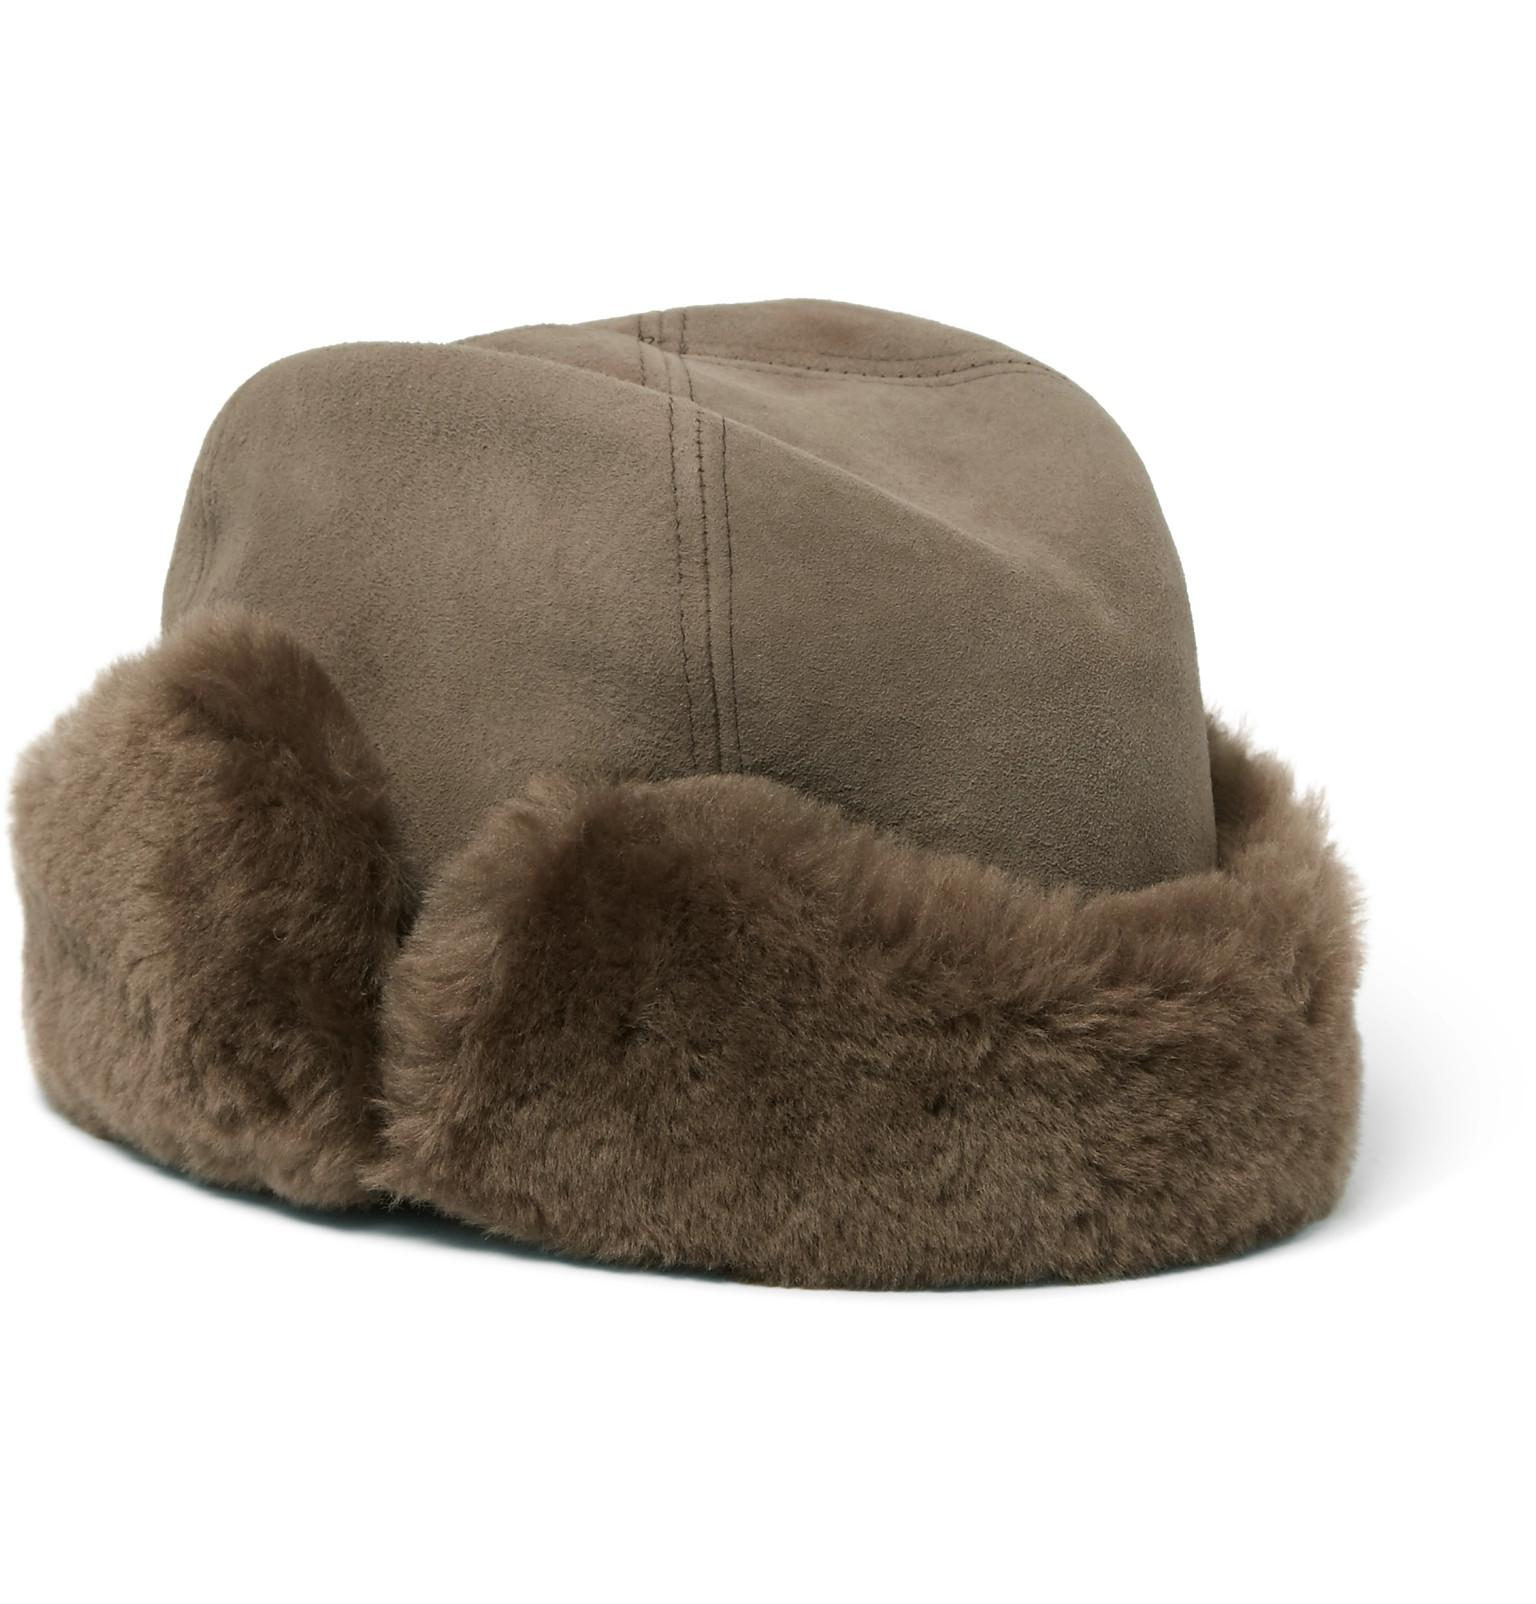 Lock   Co. Vermont Shearling Hat in Brown for Men - Lyst 697fb28c44d